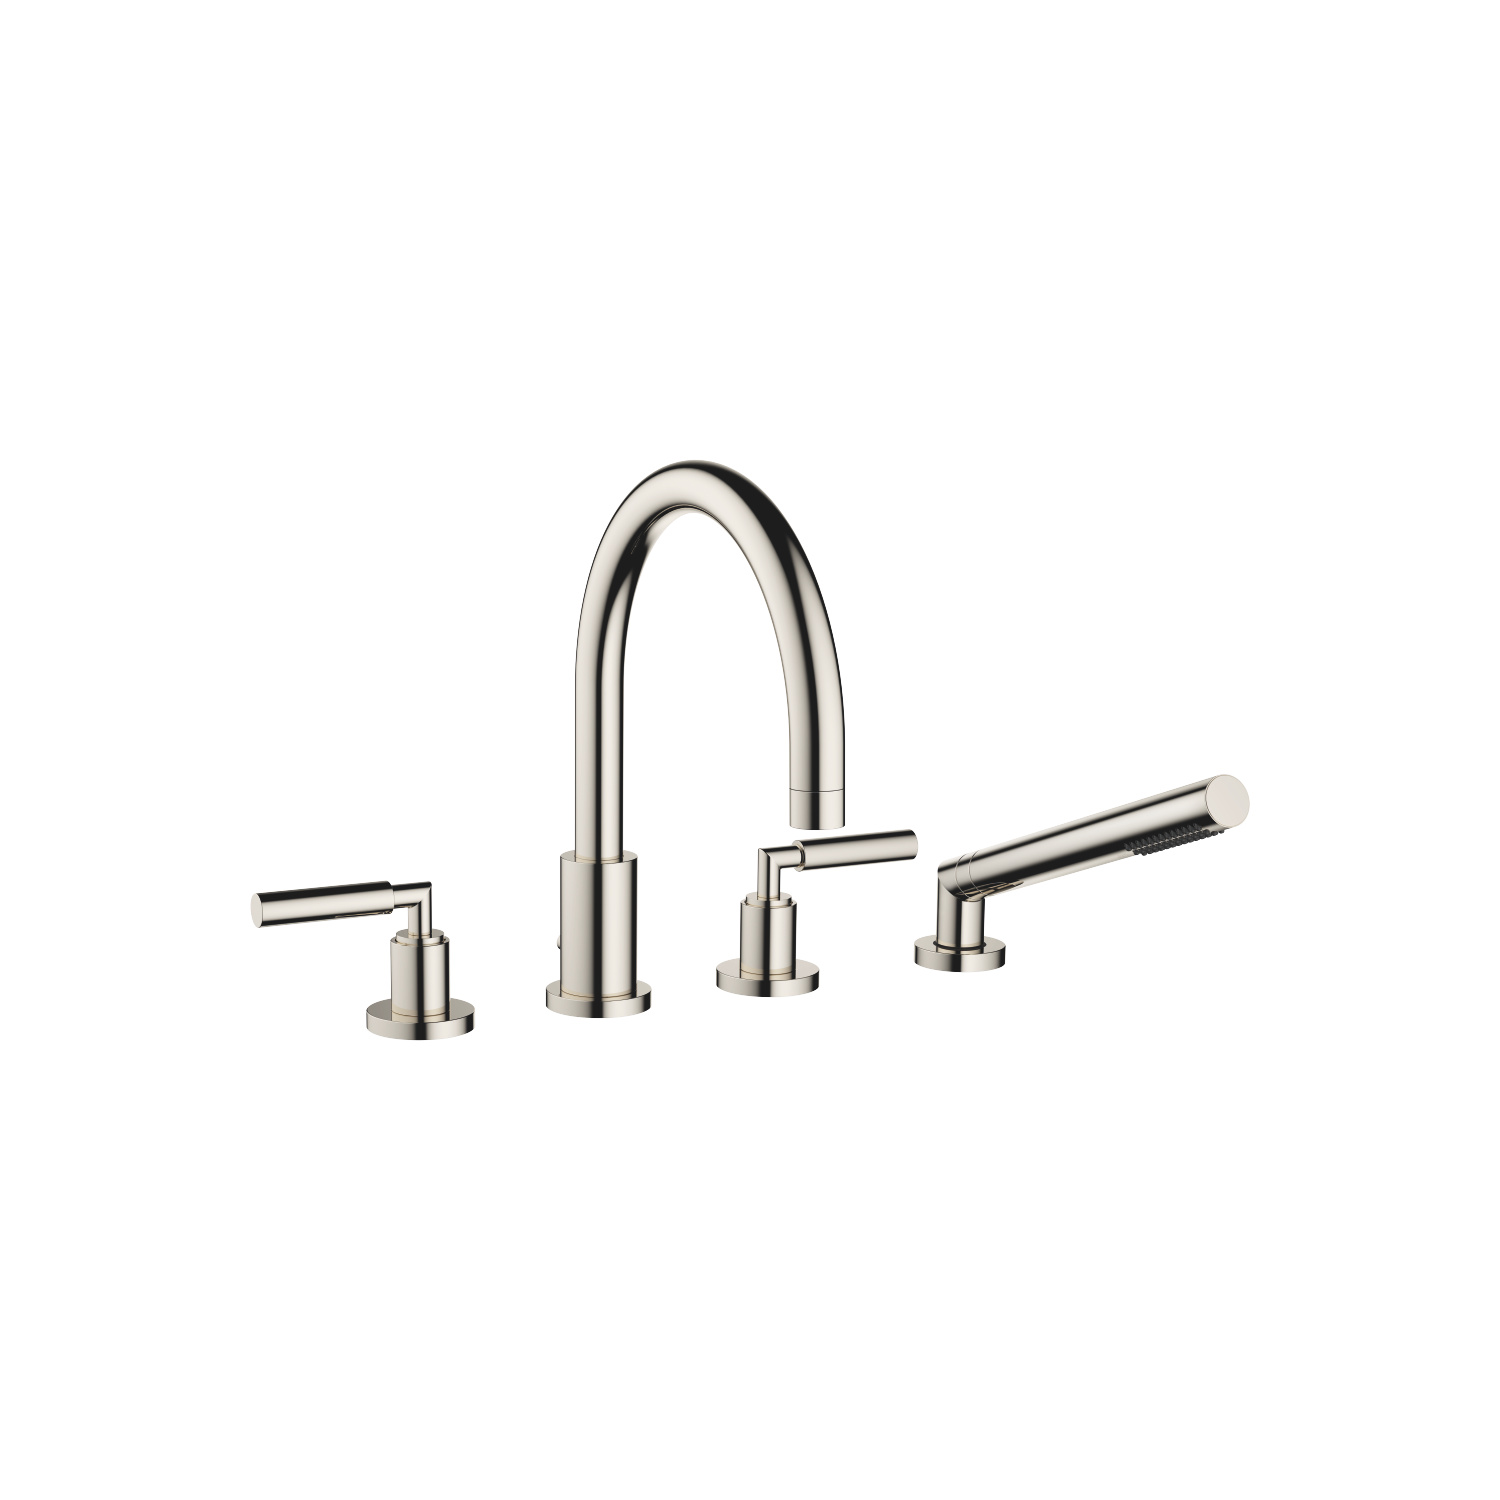 Bath shower set for bath rim or tile edge installation - platinum